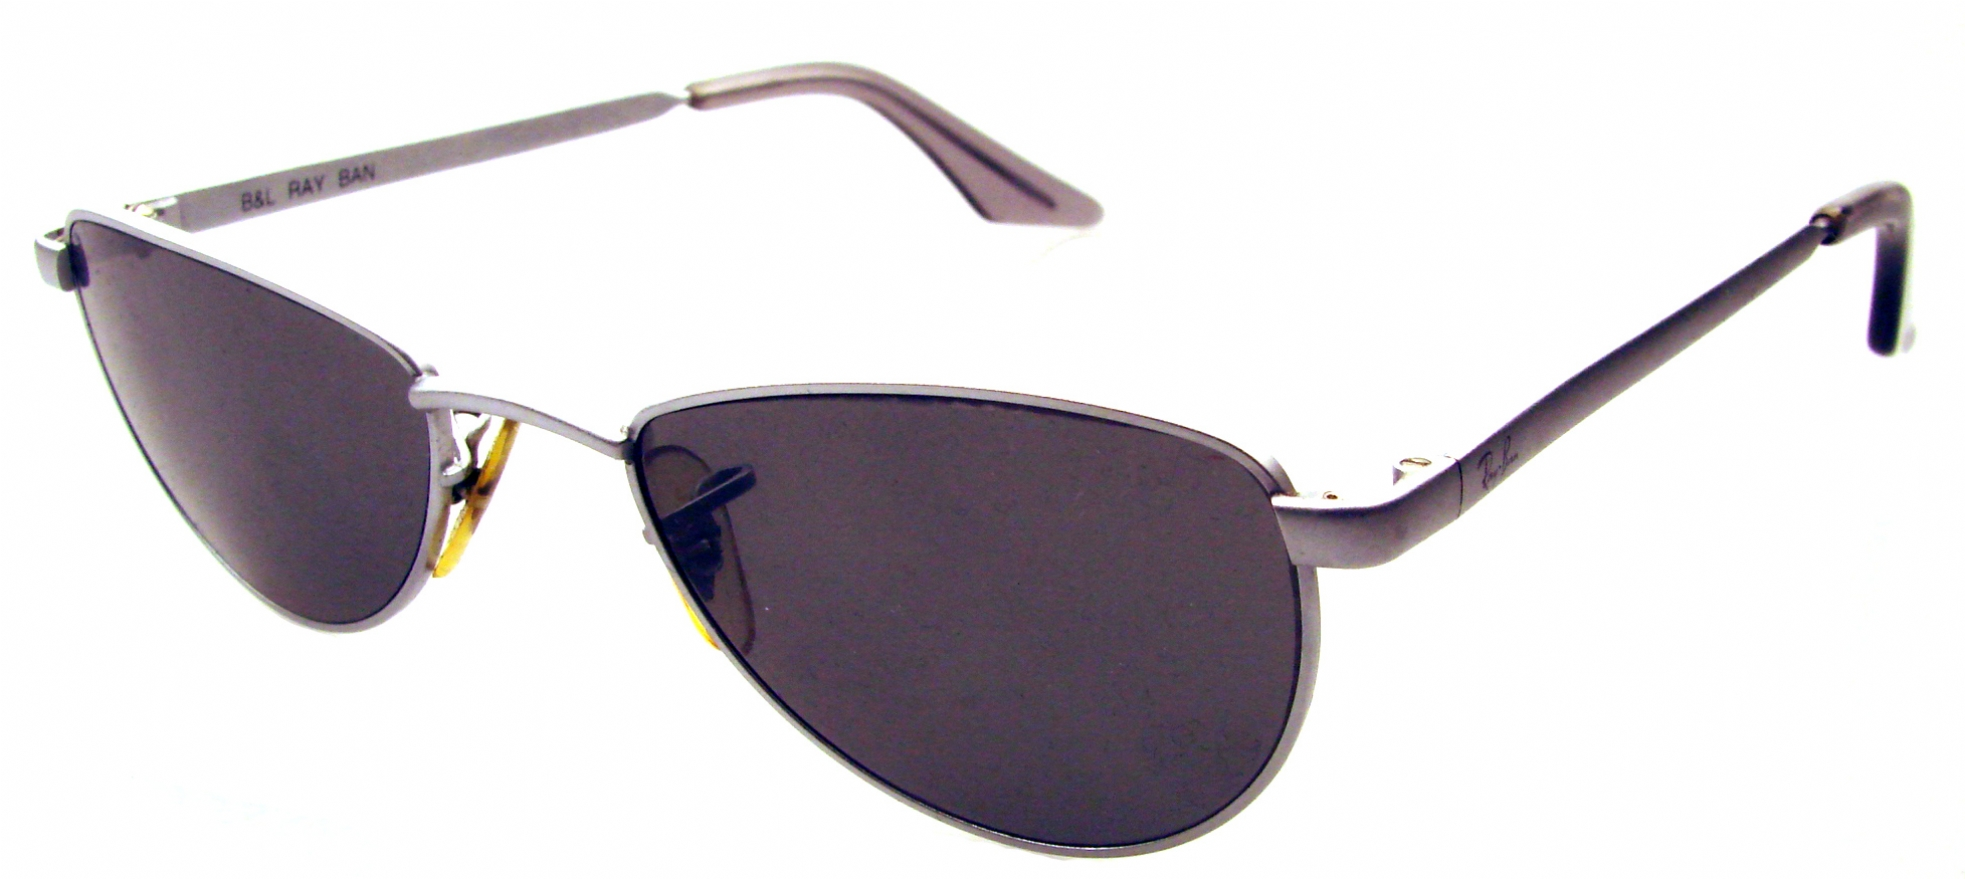 RAY BAN 2322